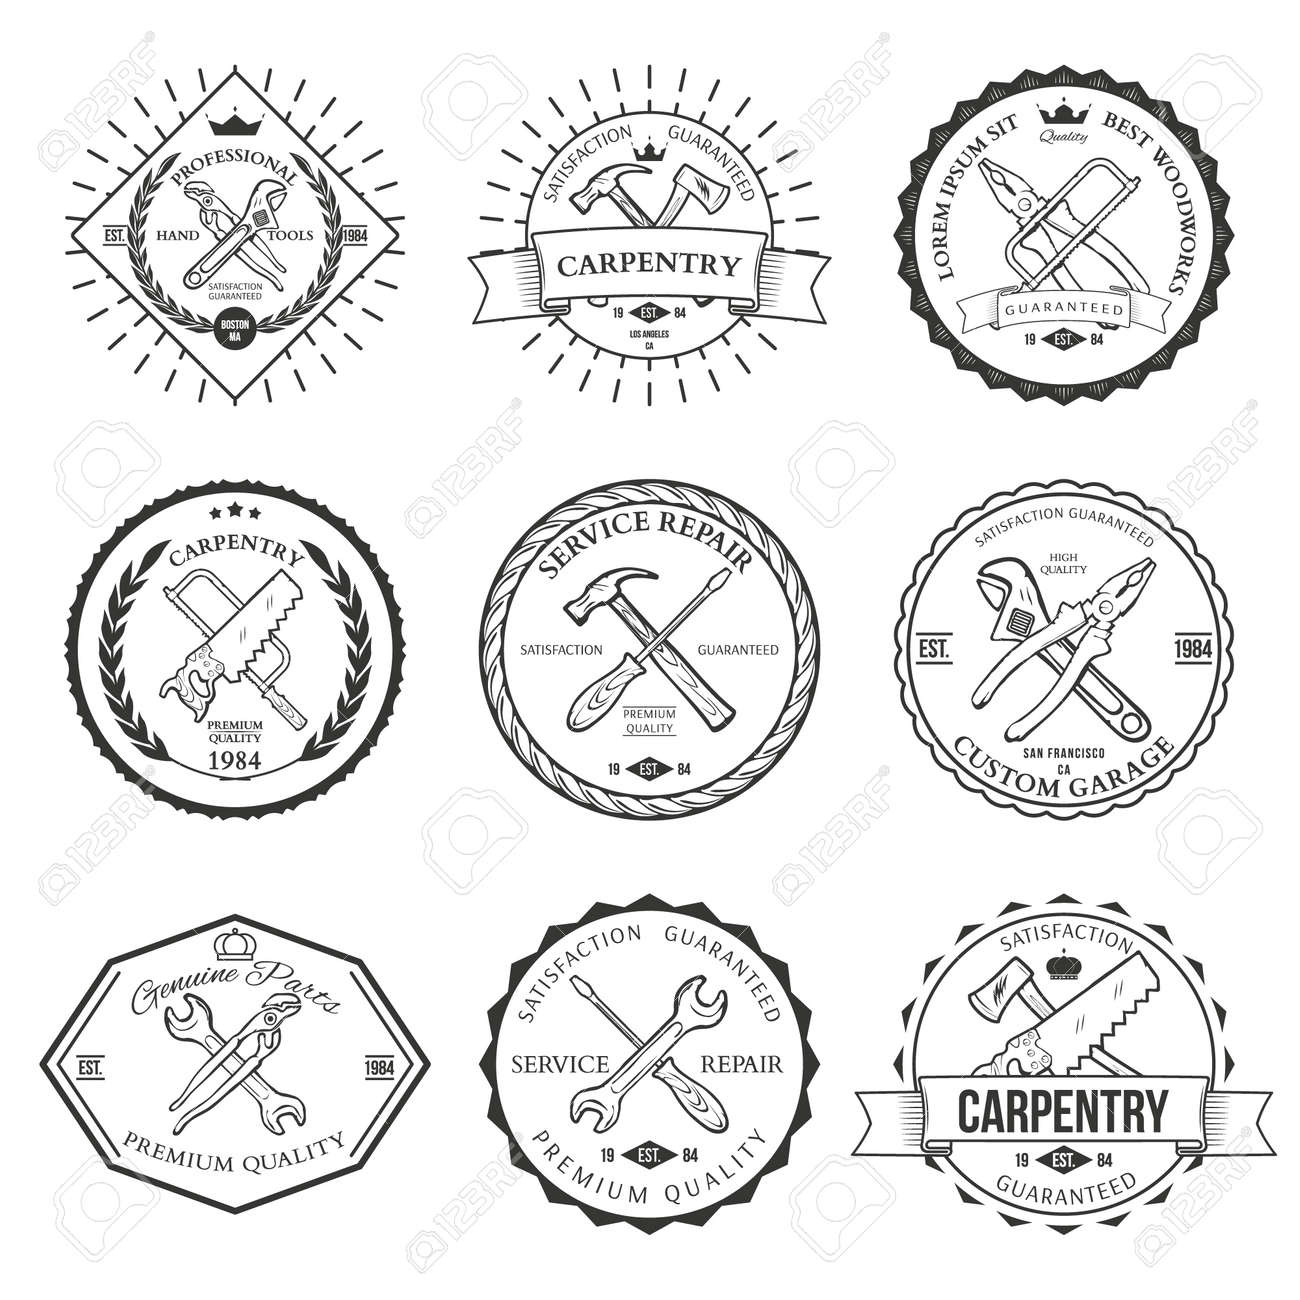 Set Of Vintage Carpentry Hand Tools Repair Service Labels And Design Elements Vector Stock